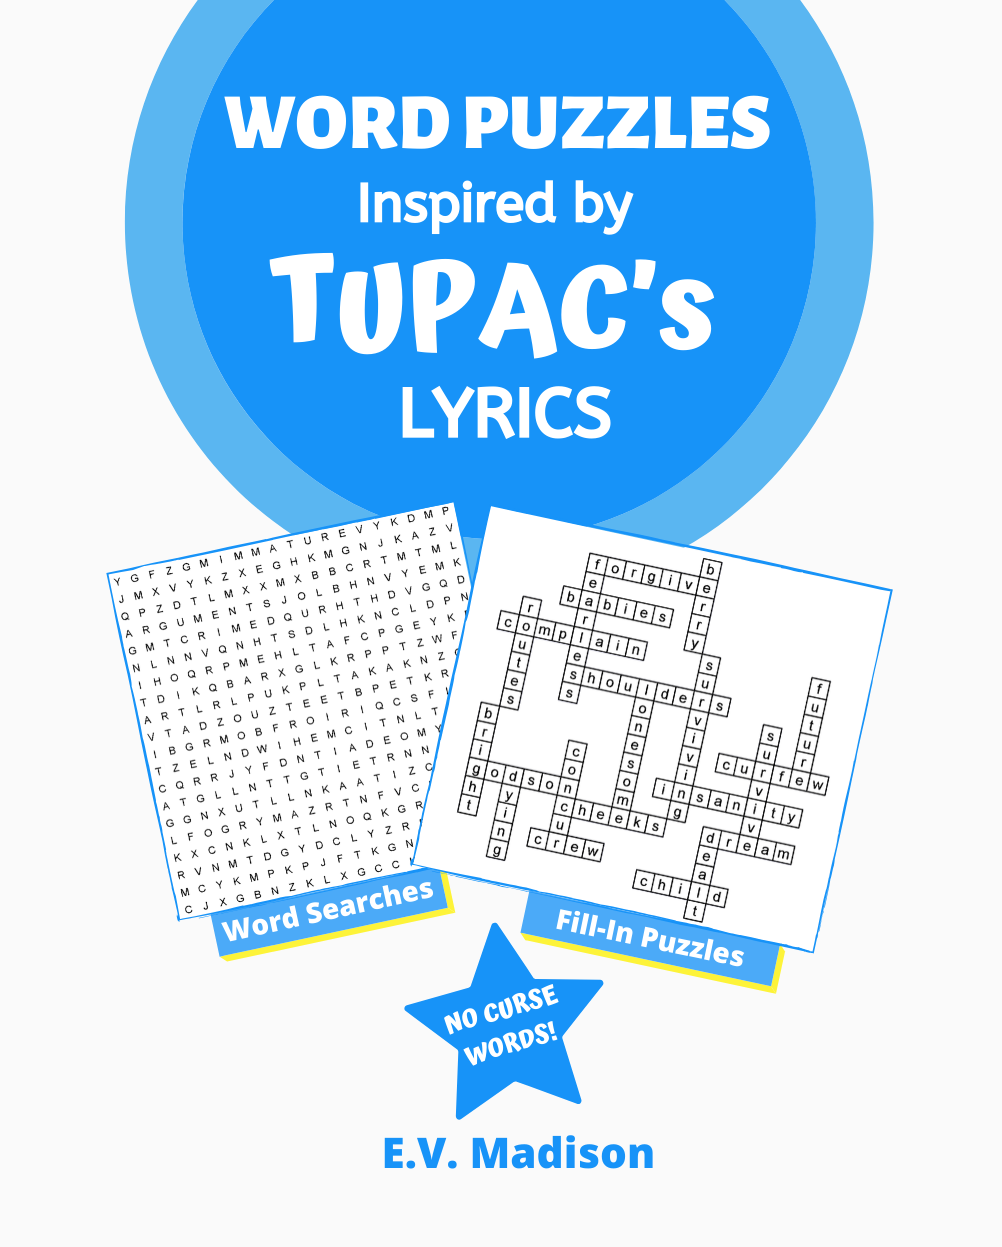 Word Puzzles Inspired by TUPAC's Lyrics